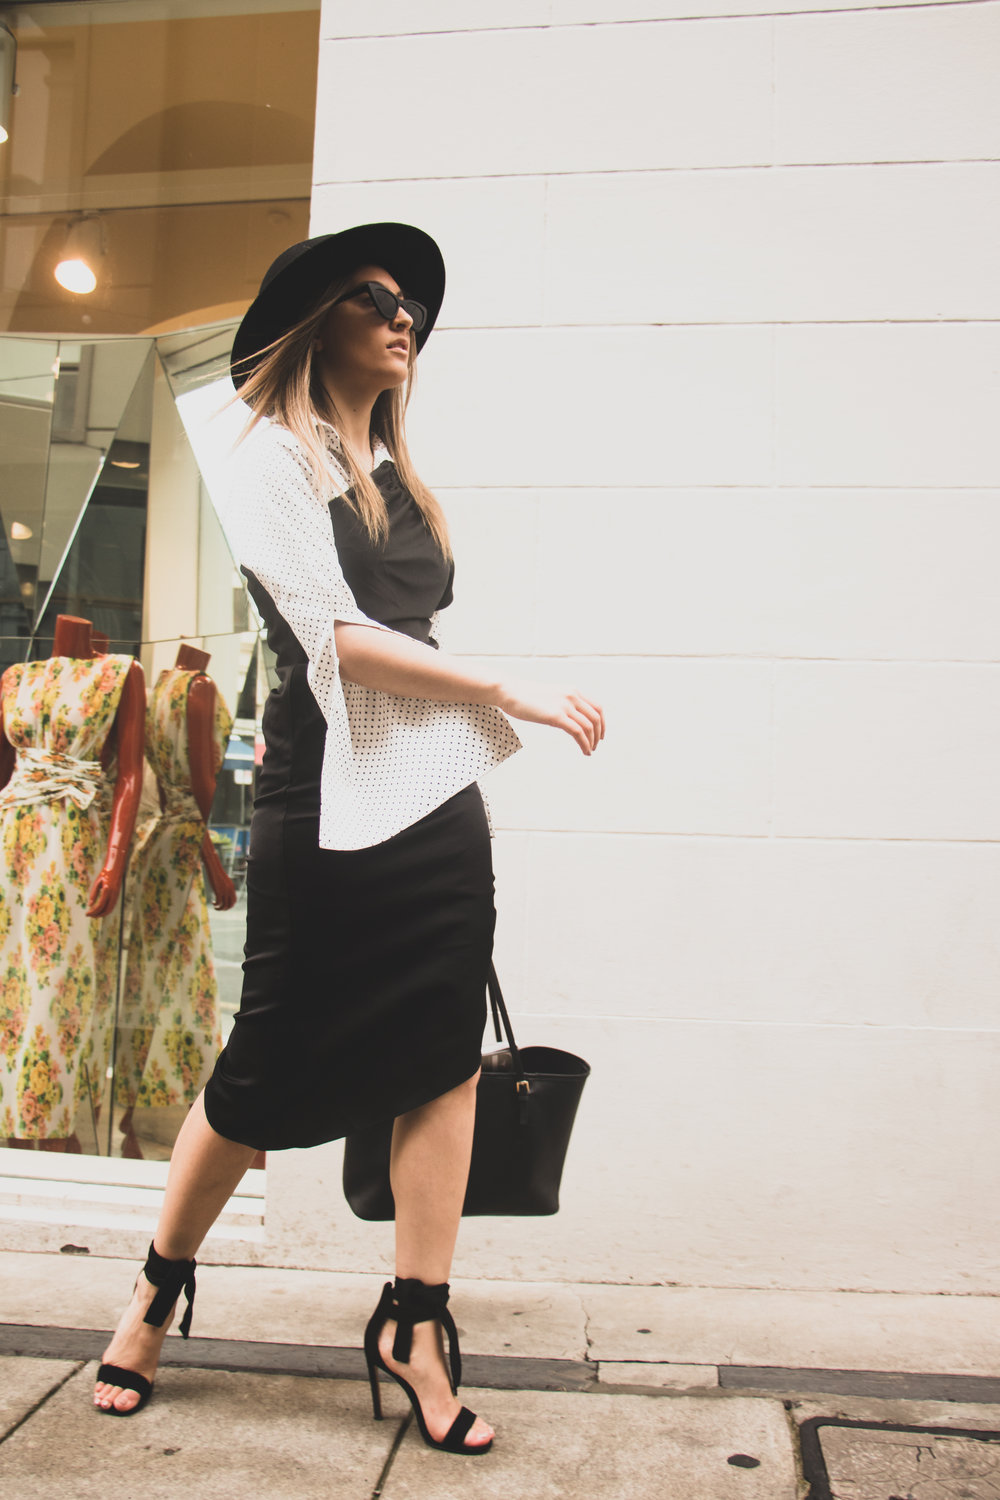 Outfit Details: dress: Keepsake, bag: Michael Kors, shoes: Windsor Smith, shirt: Maurie and Eve and hat: Sportsgirl